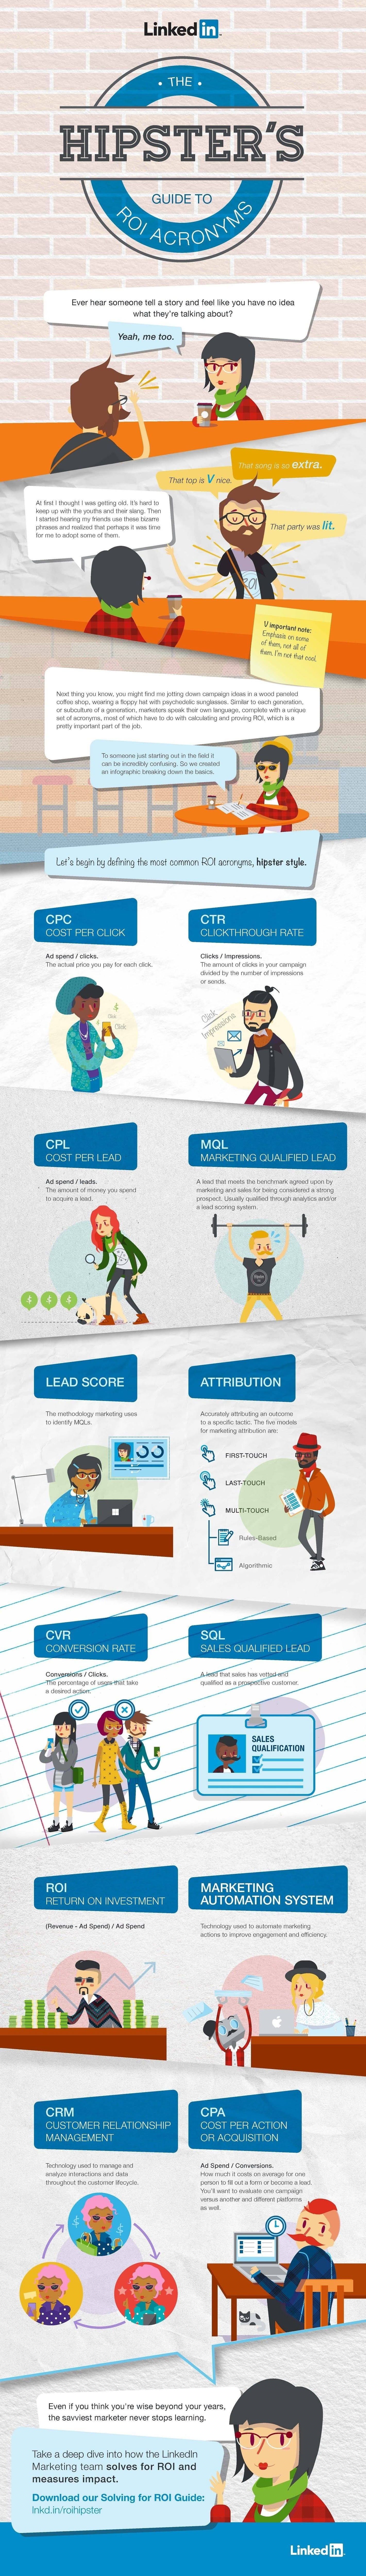 THE HIPSTER'S GUIDE TO ROI #INFOGRAPHIC